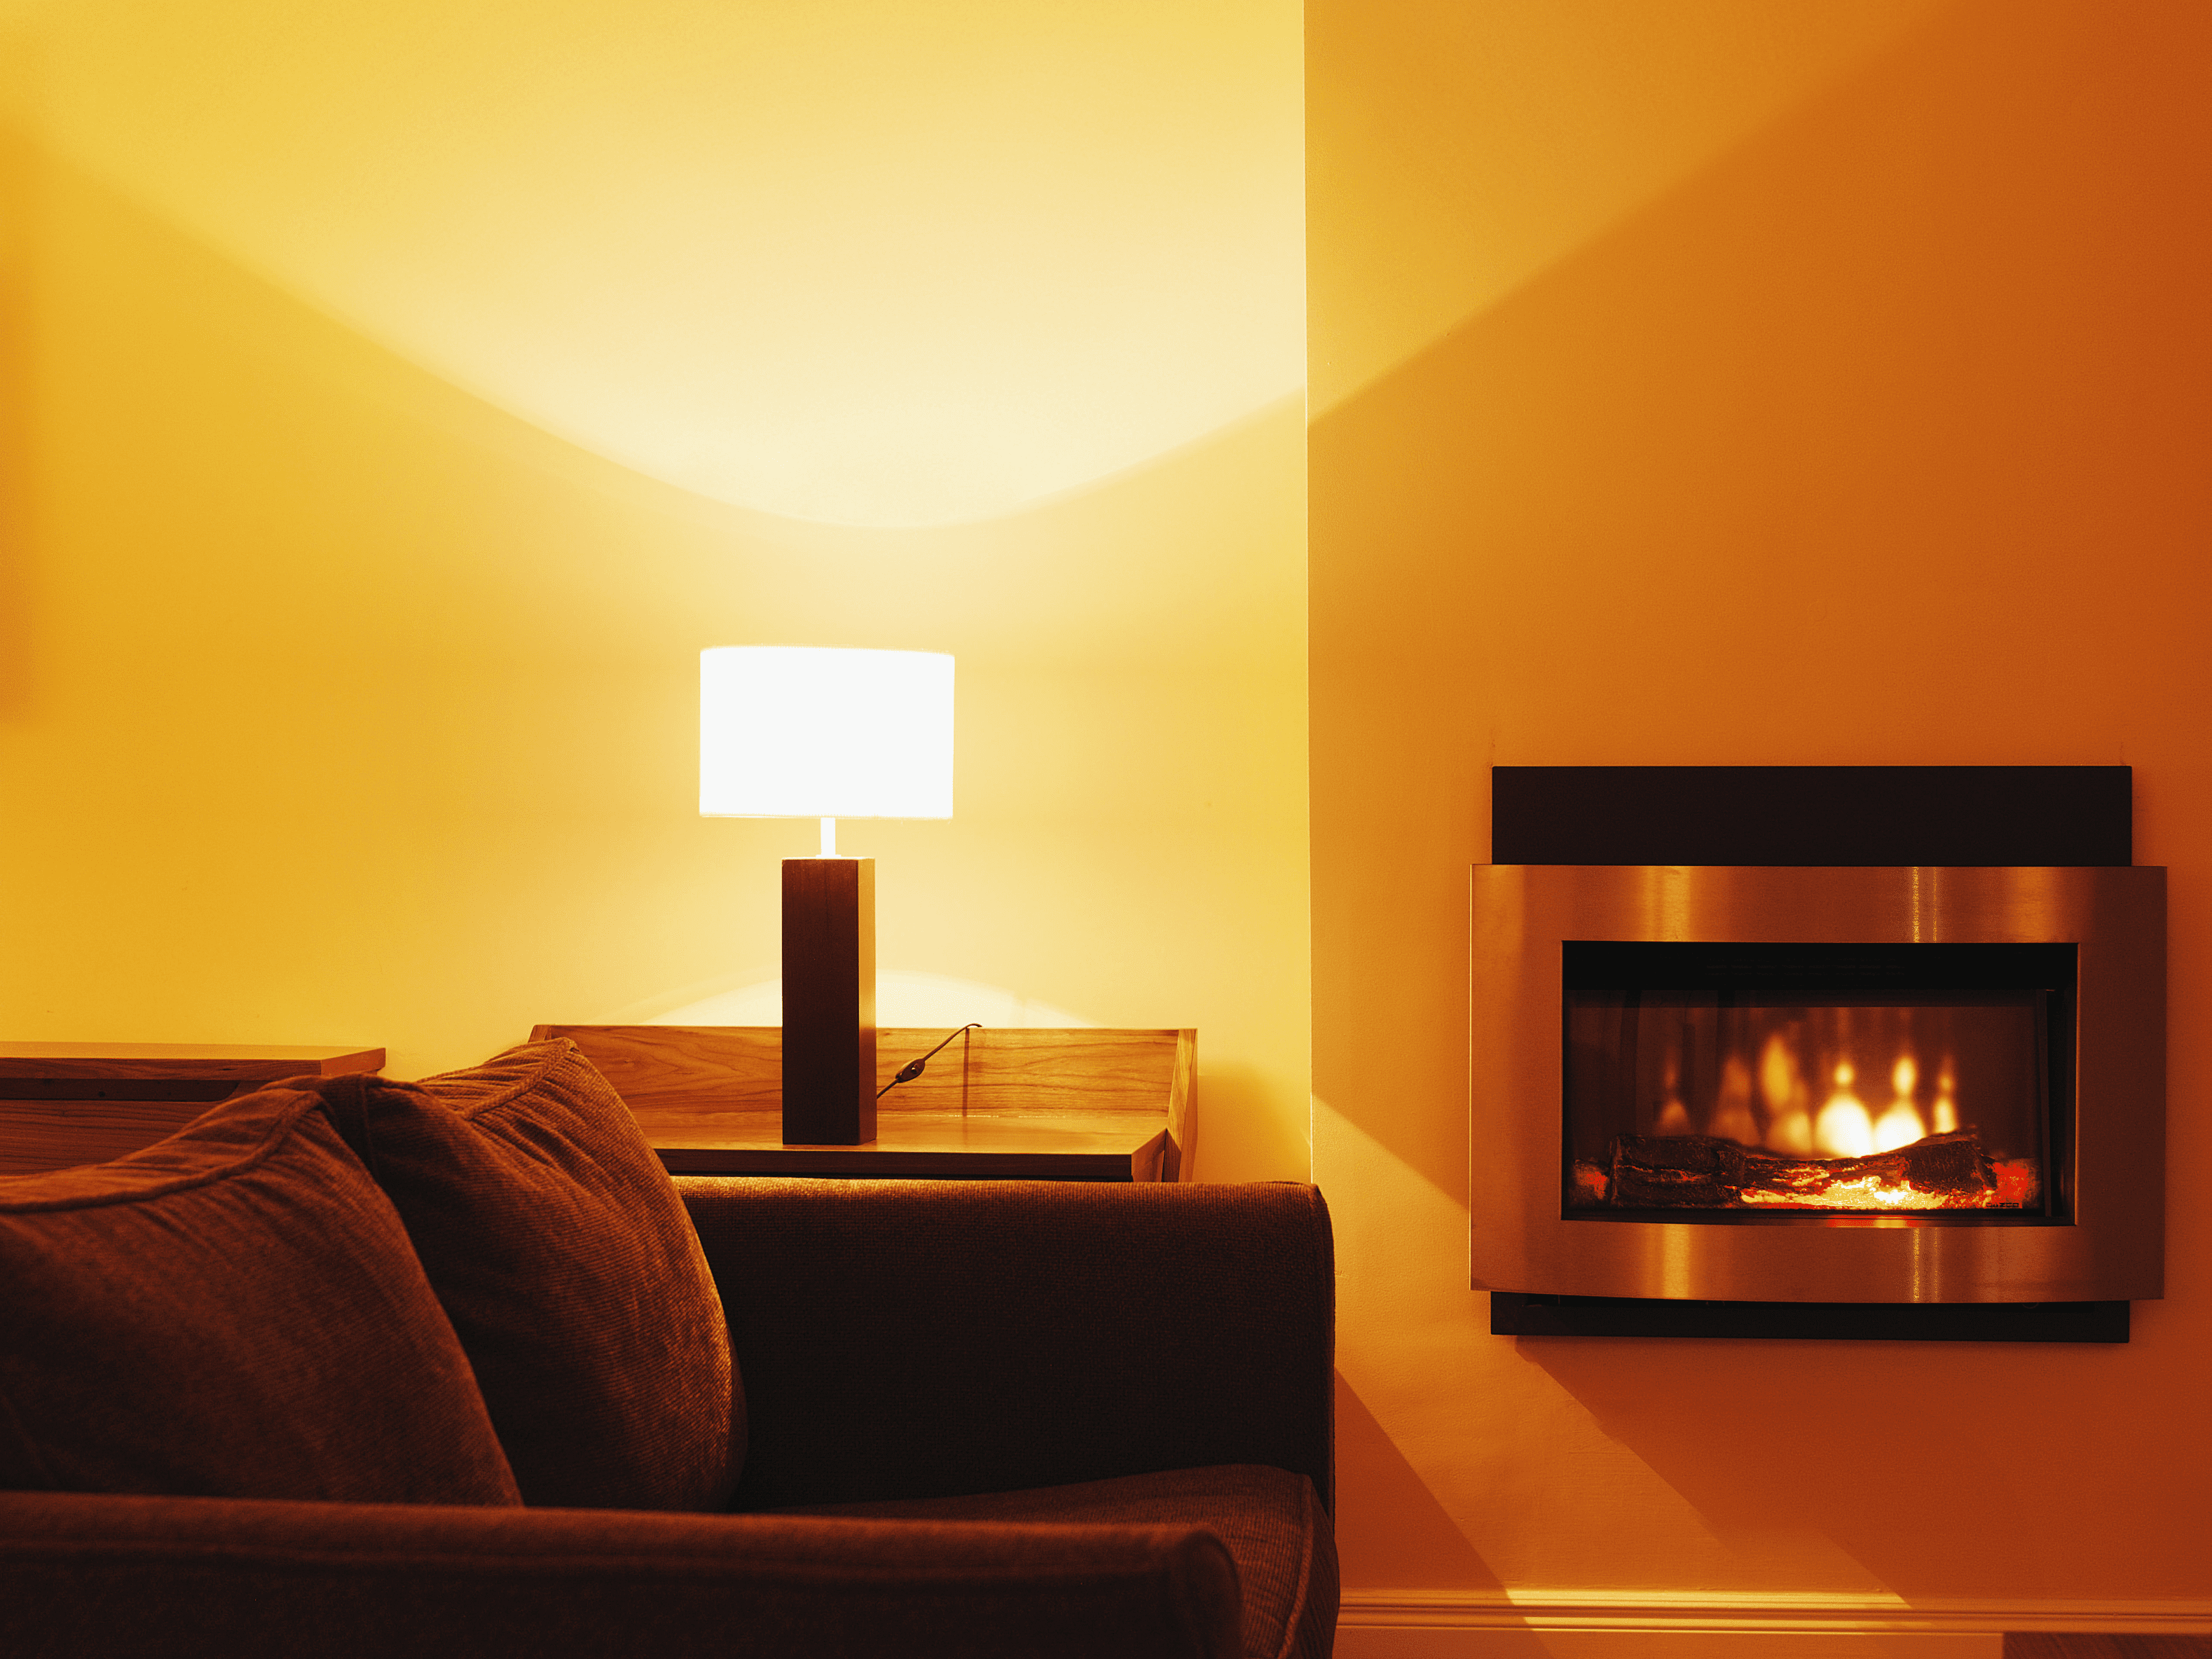 What You Should Know About Warm Lighting